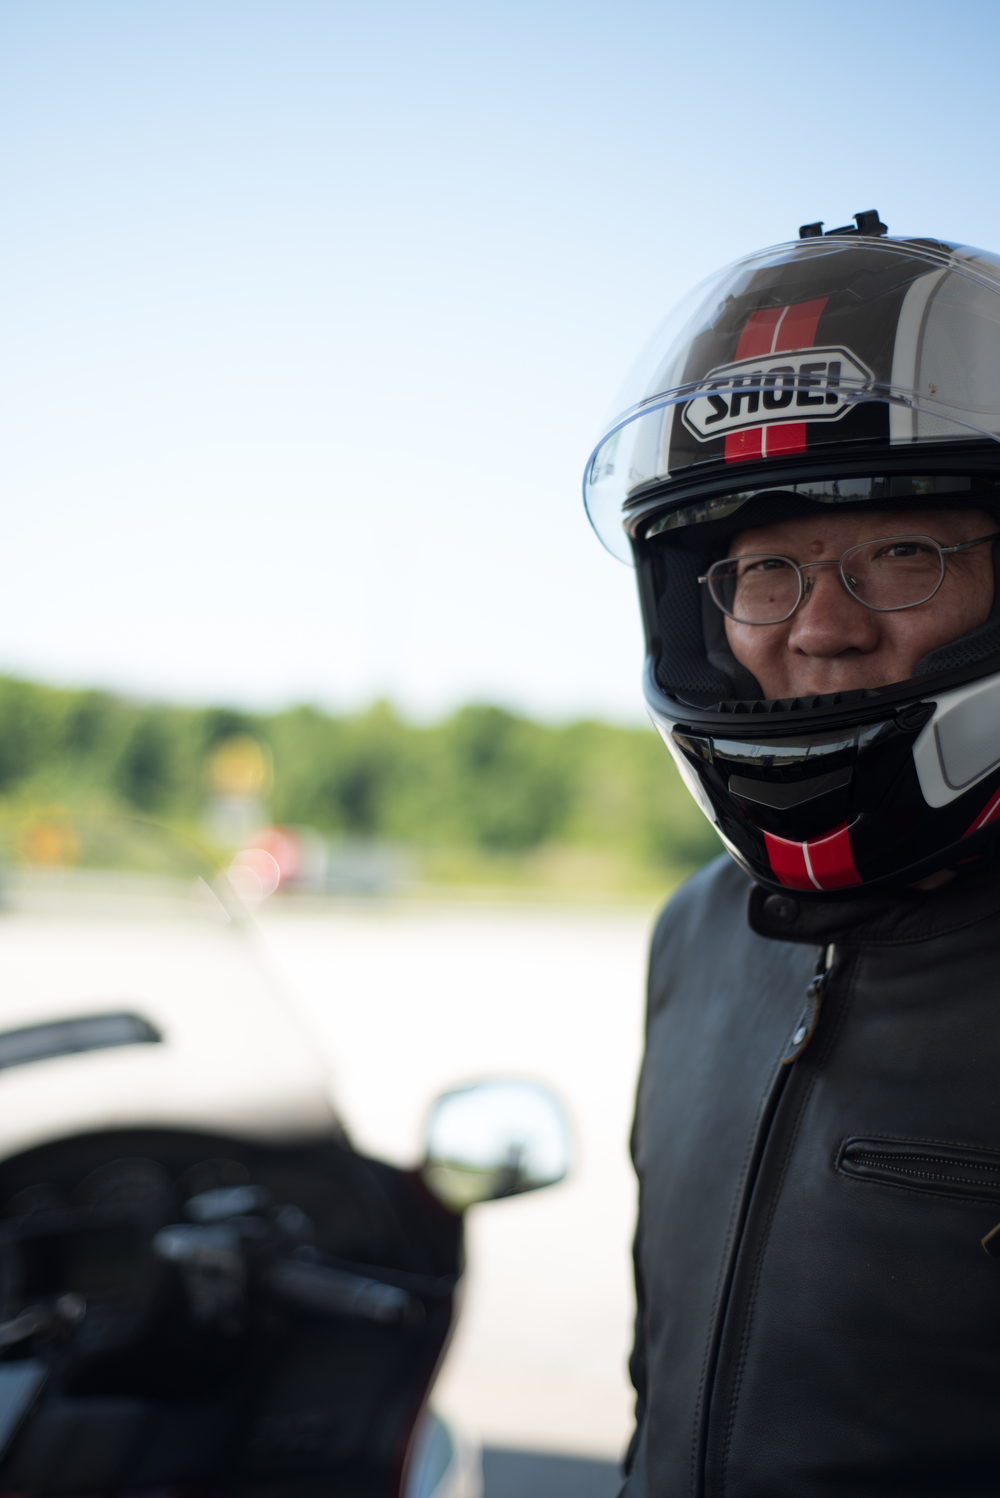 Riding from New York to LA, this gentleman from Beijing, China was on an adventure and a mission.